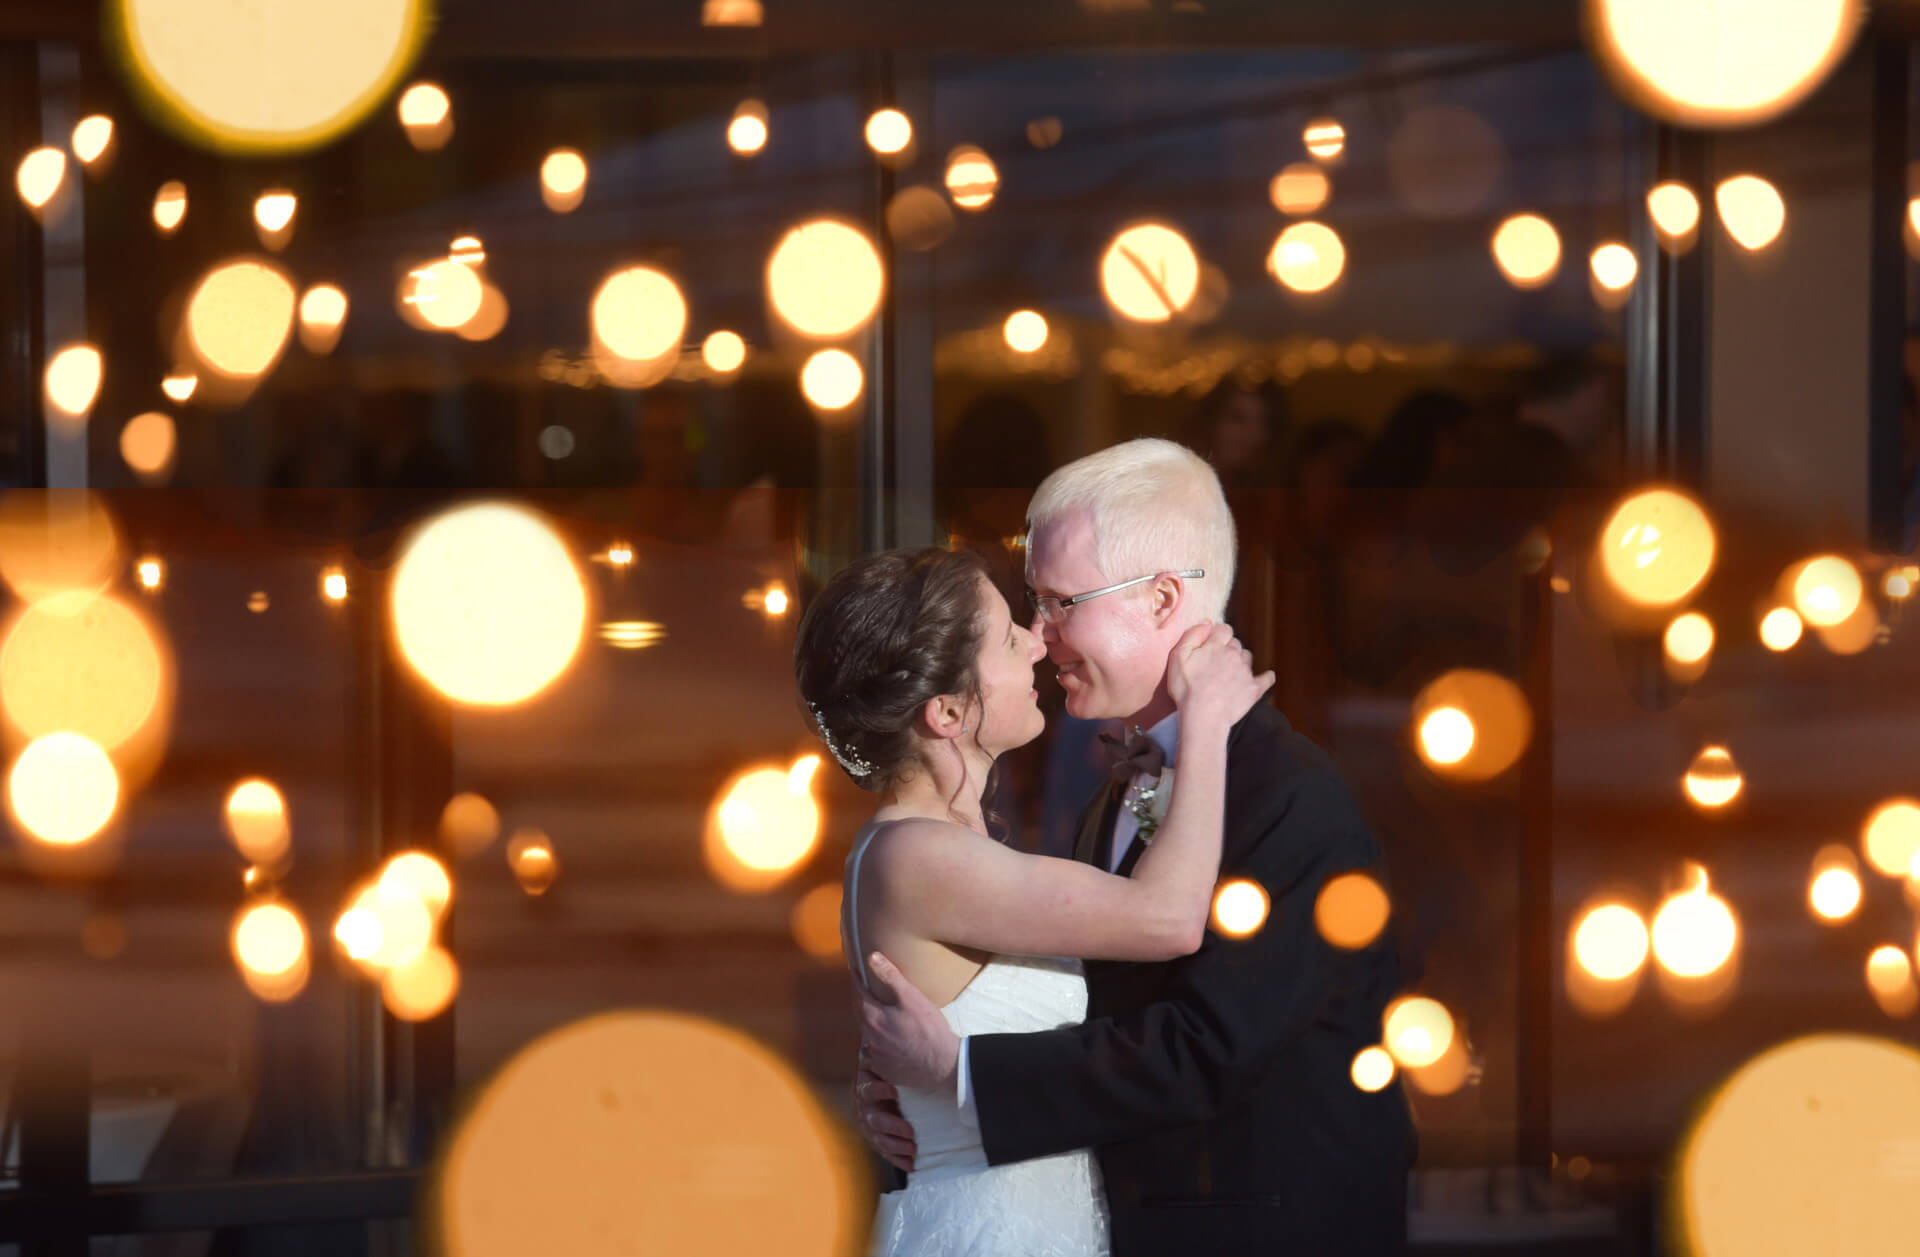 Epic wedding day portraits are part of my every wedding photo coverage like this cool portrait with fairy lights at the Stonebridge Golf Club in Ann Arbor, Michigan.